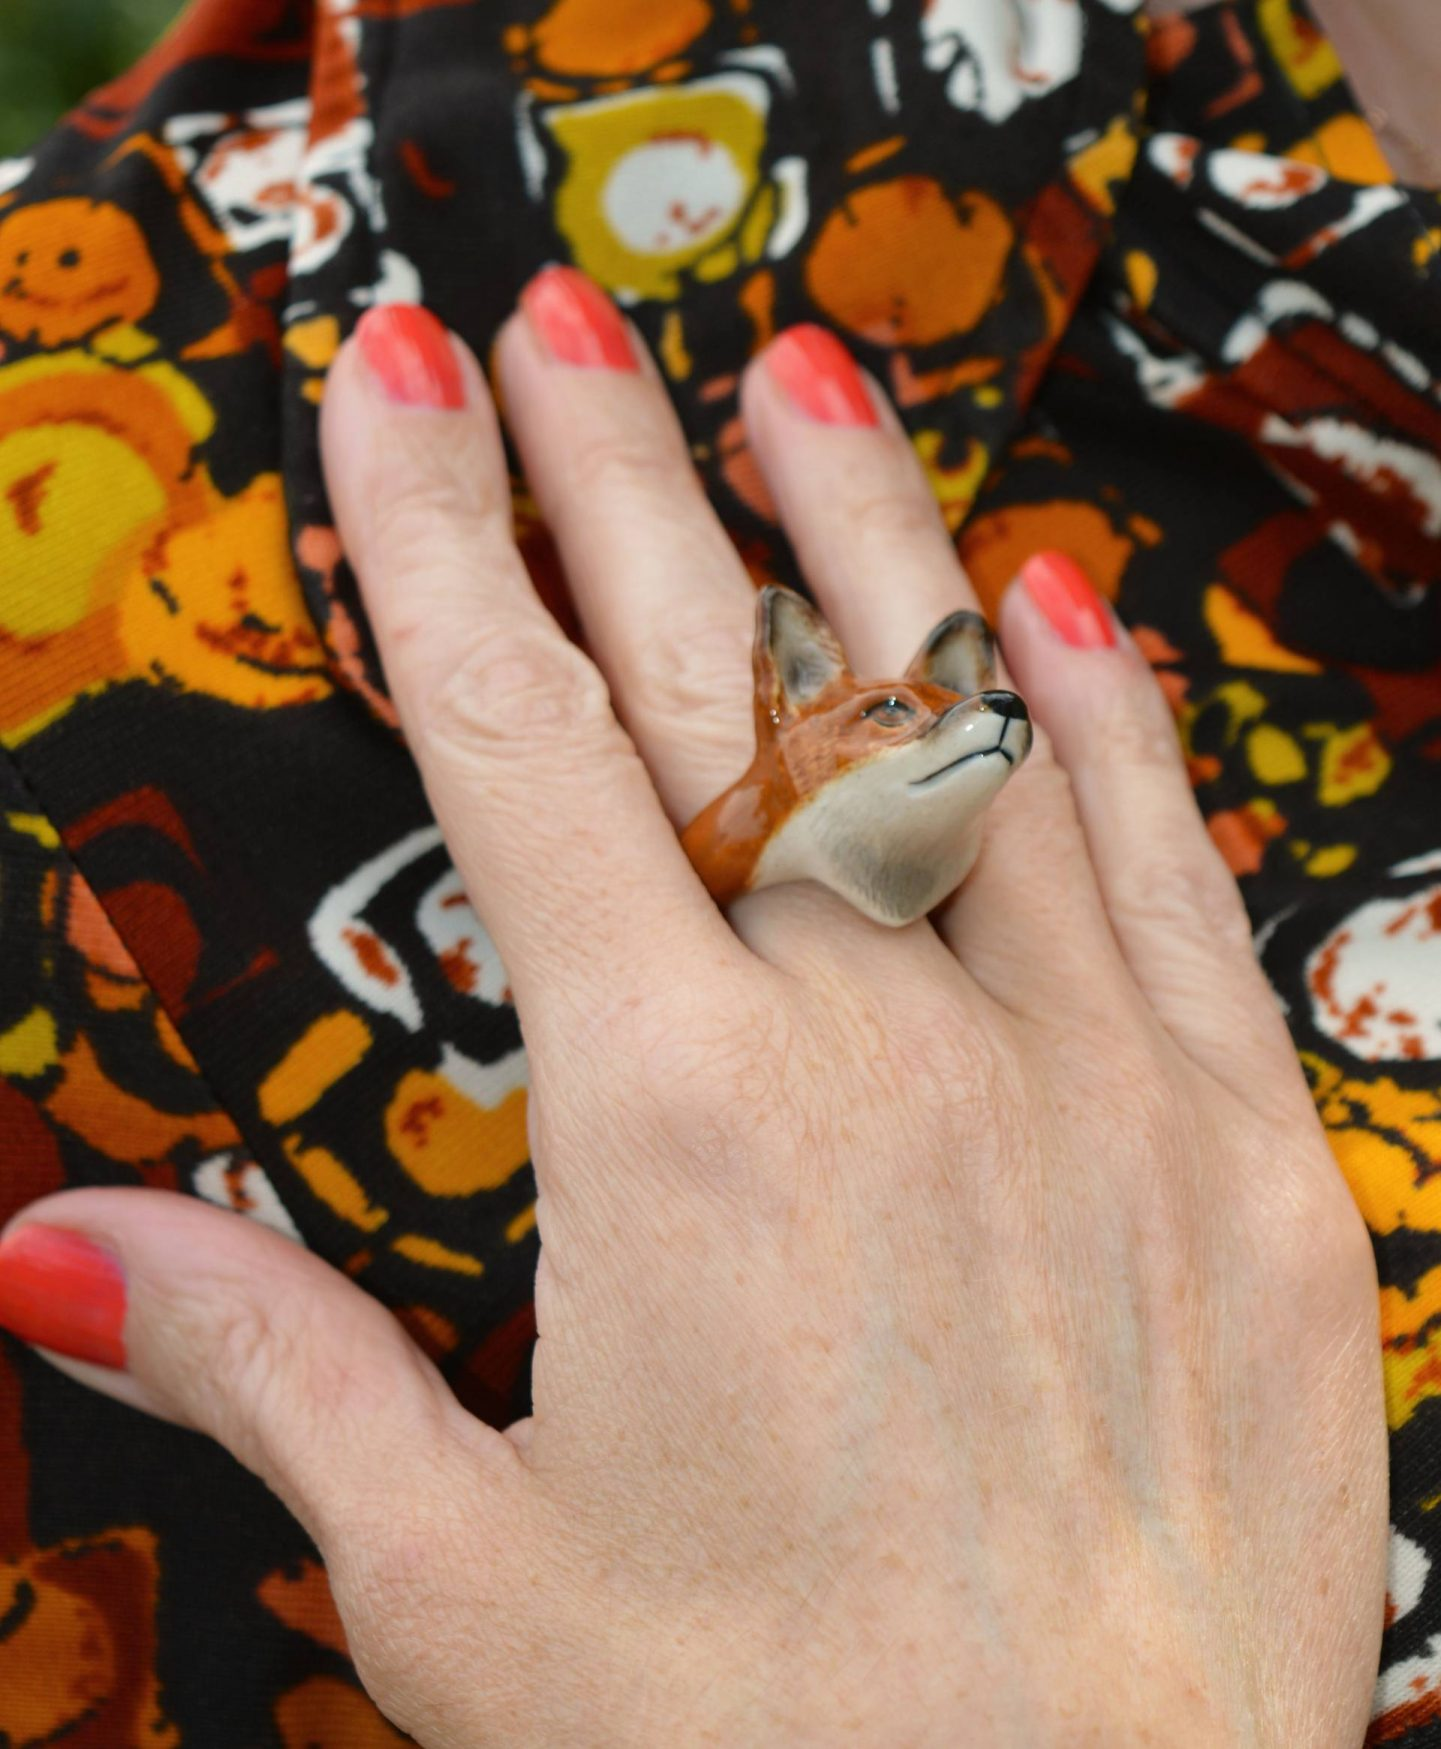 And Mary fox ring